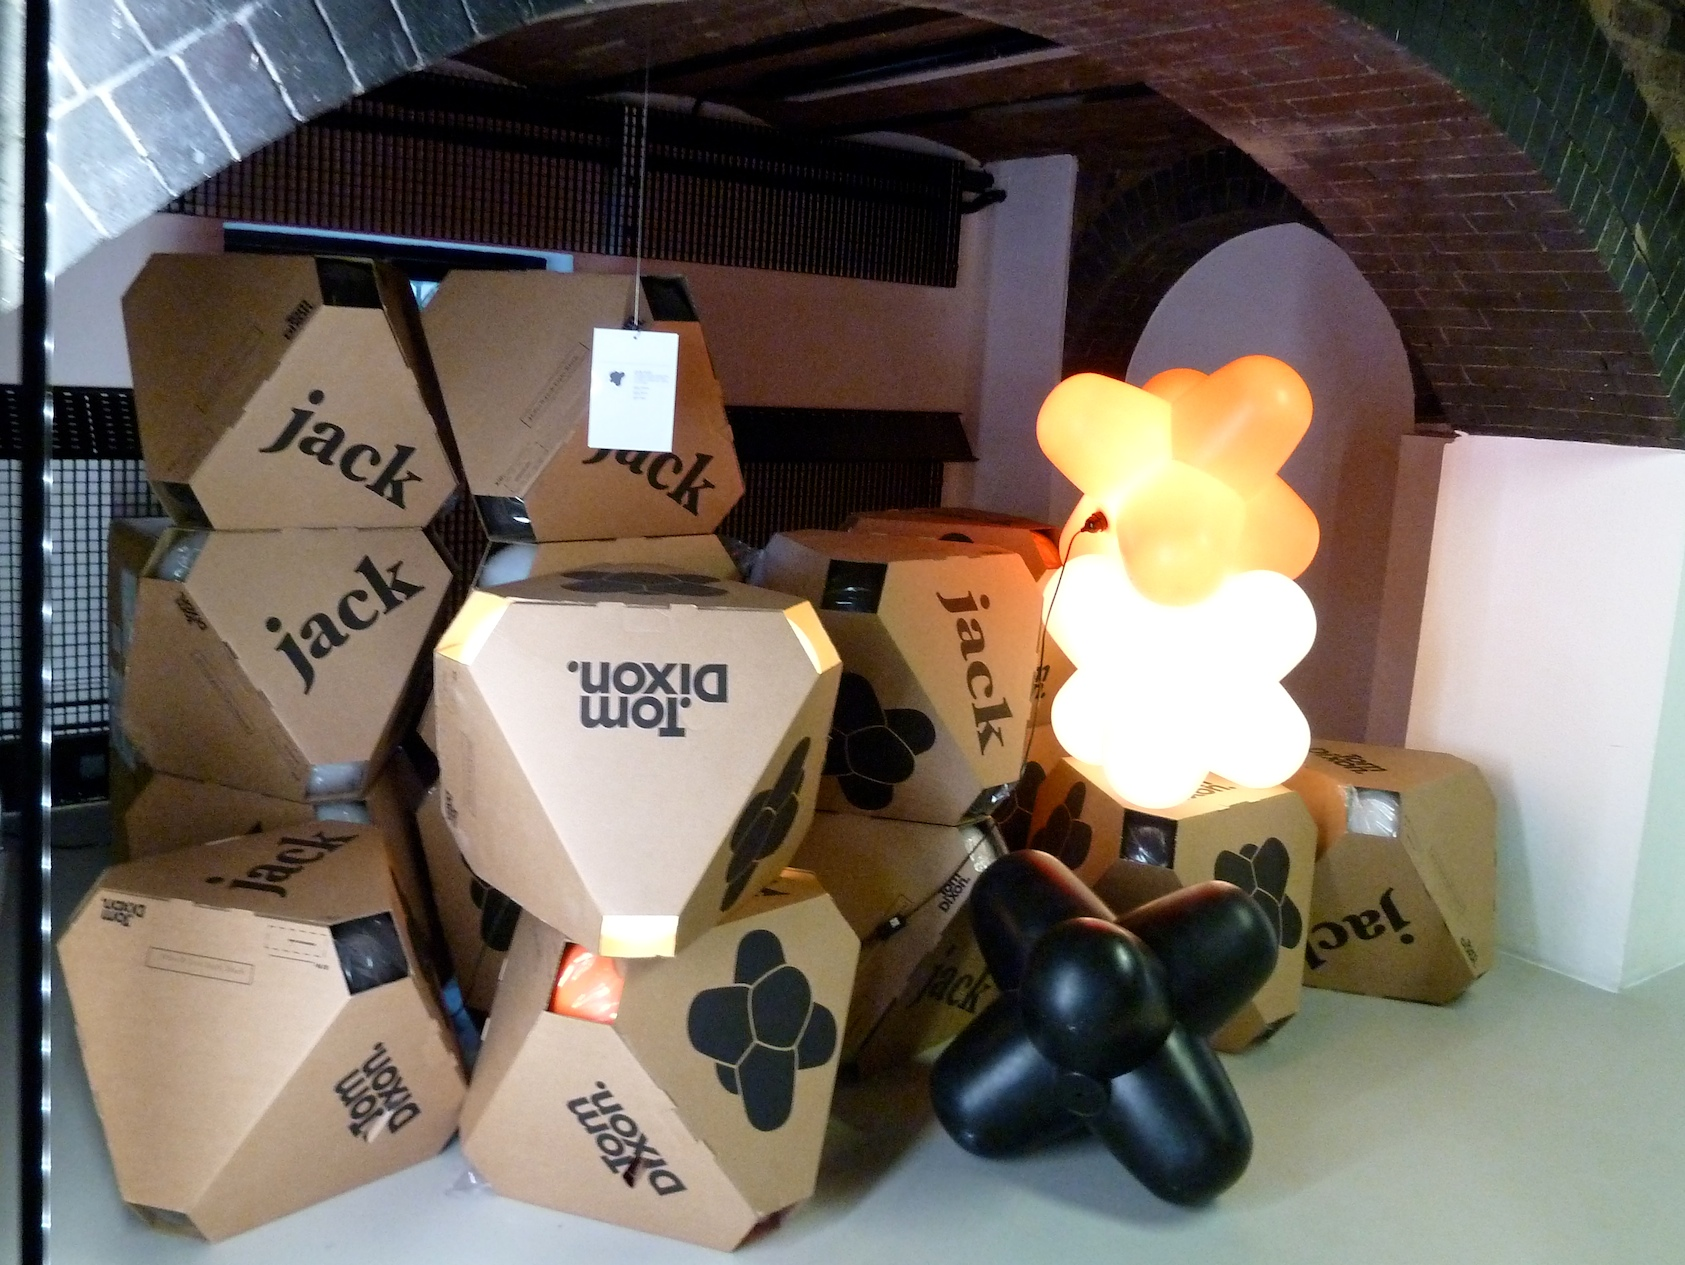 A pile of the classic Jack lights at Tom Dixon shop